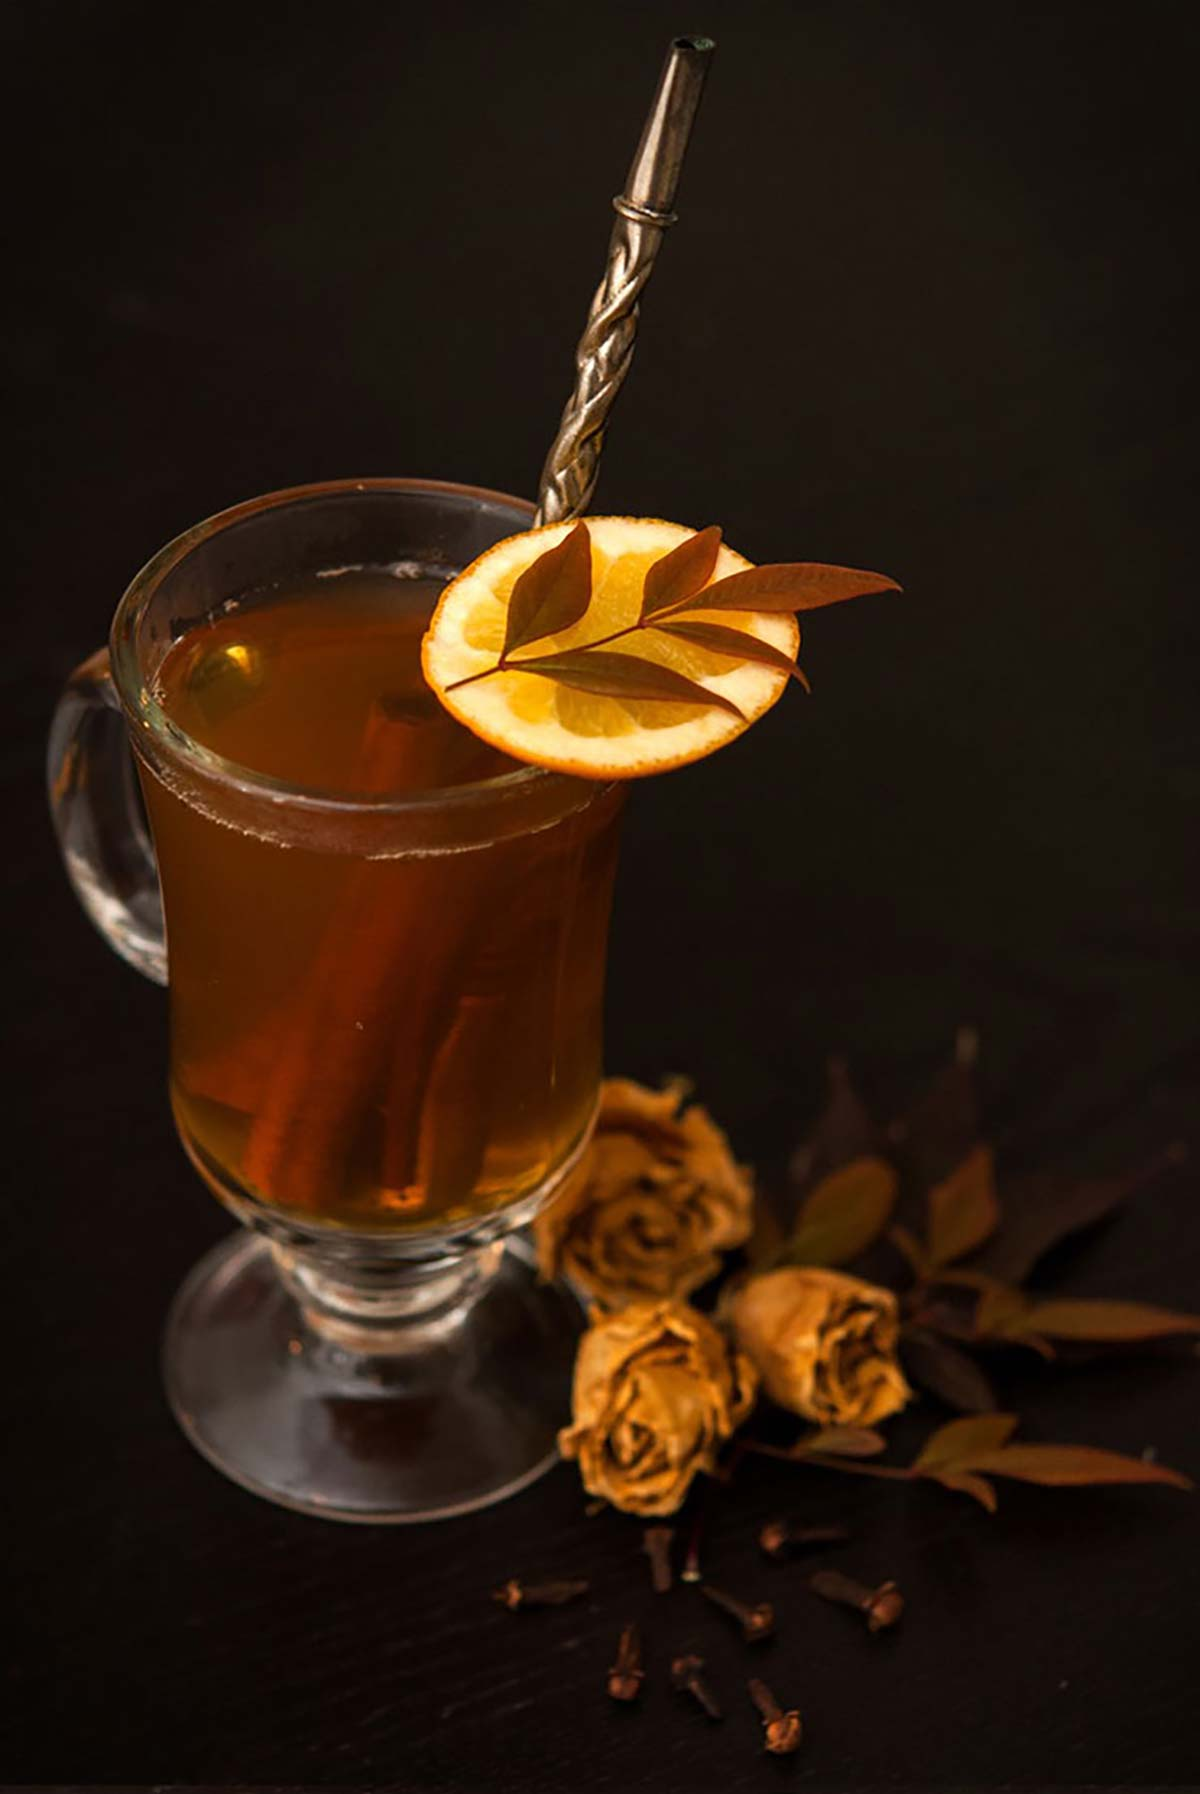 A mug of hot toddy, garnished with an orange slice, topped with a small lead, with a few dry roses and leaves at its base.